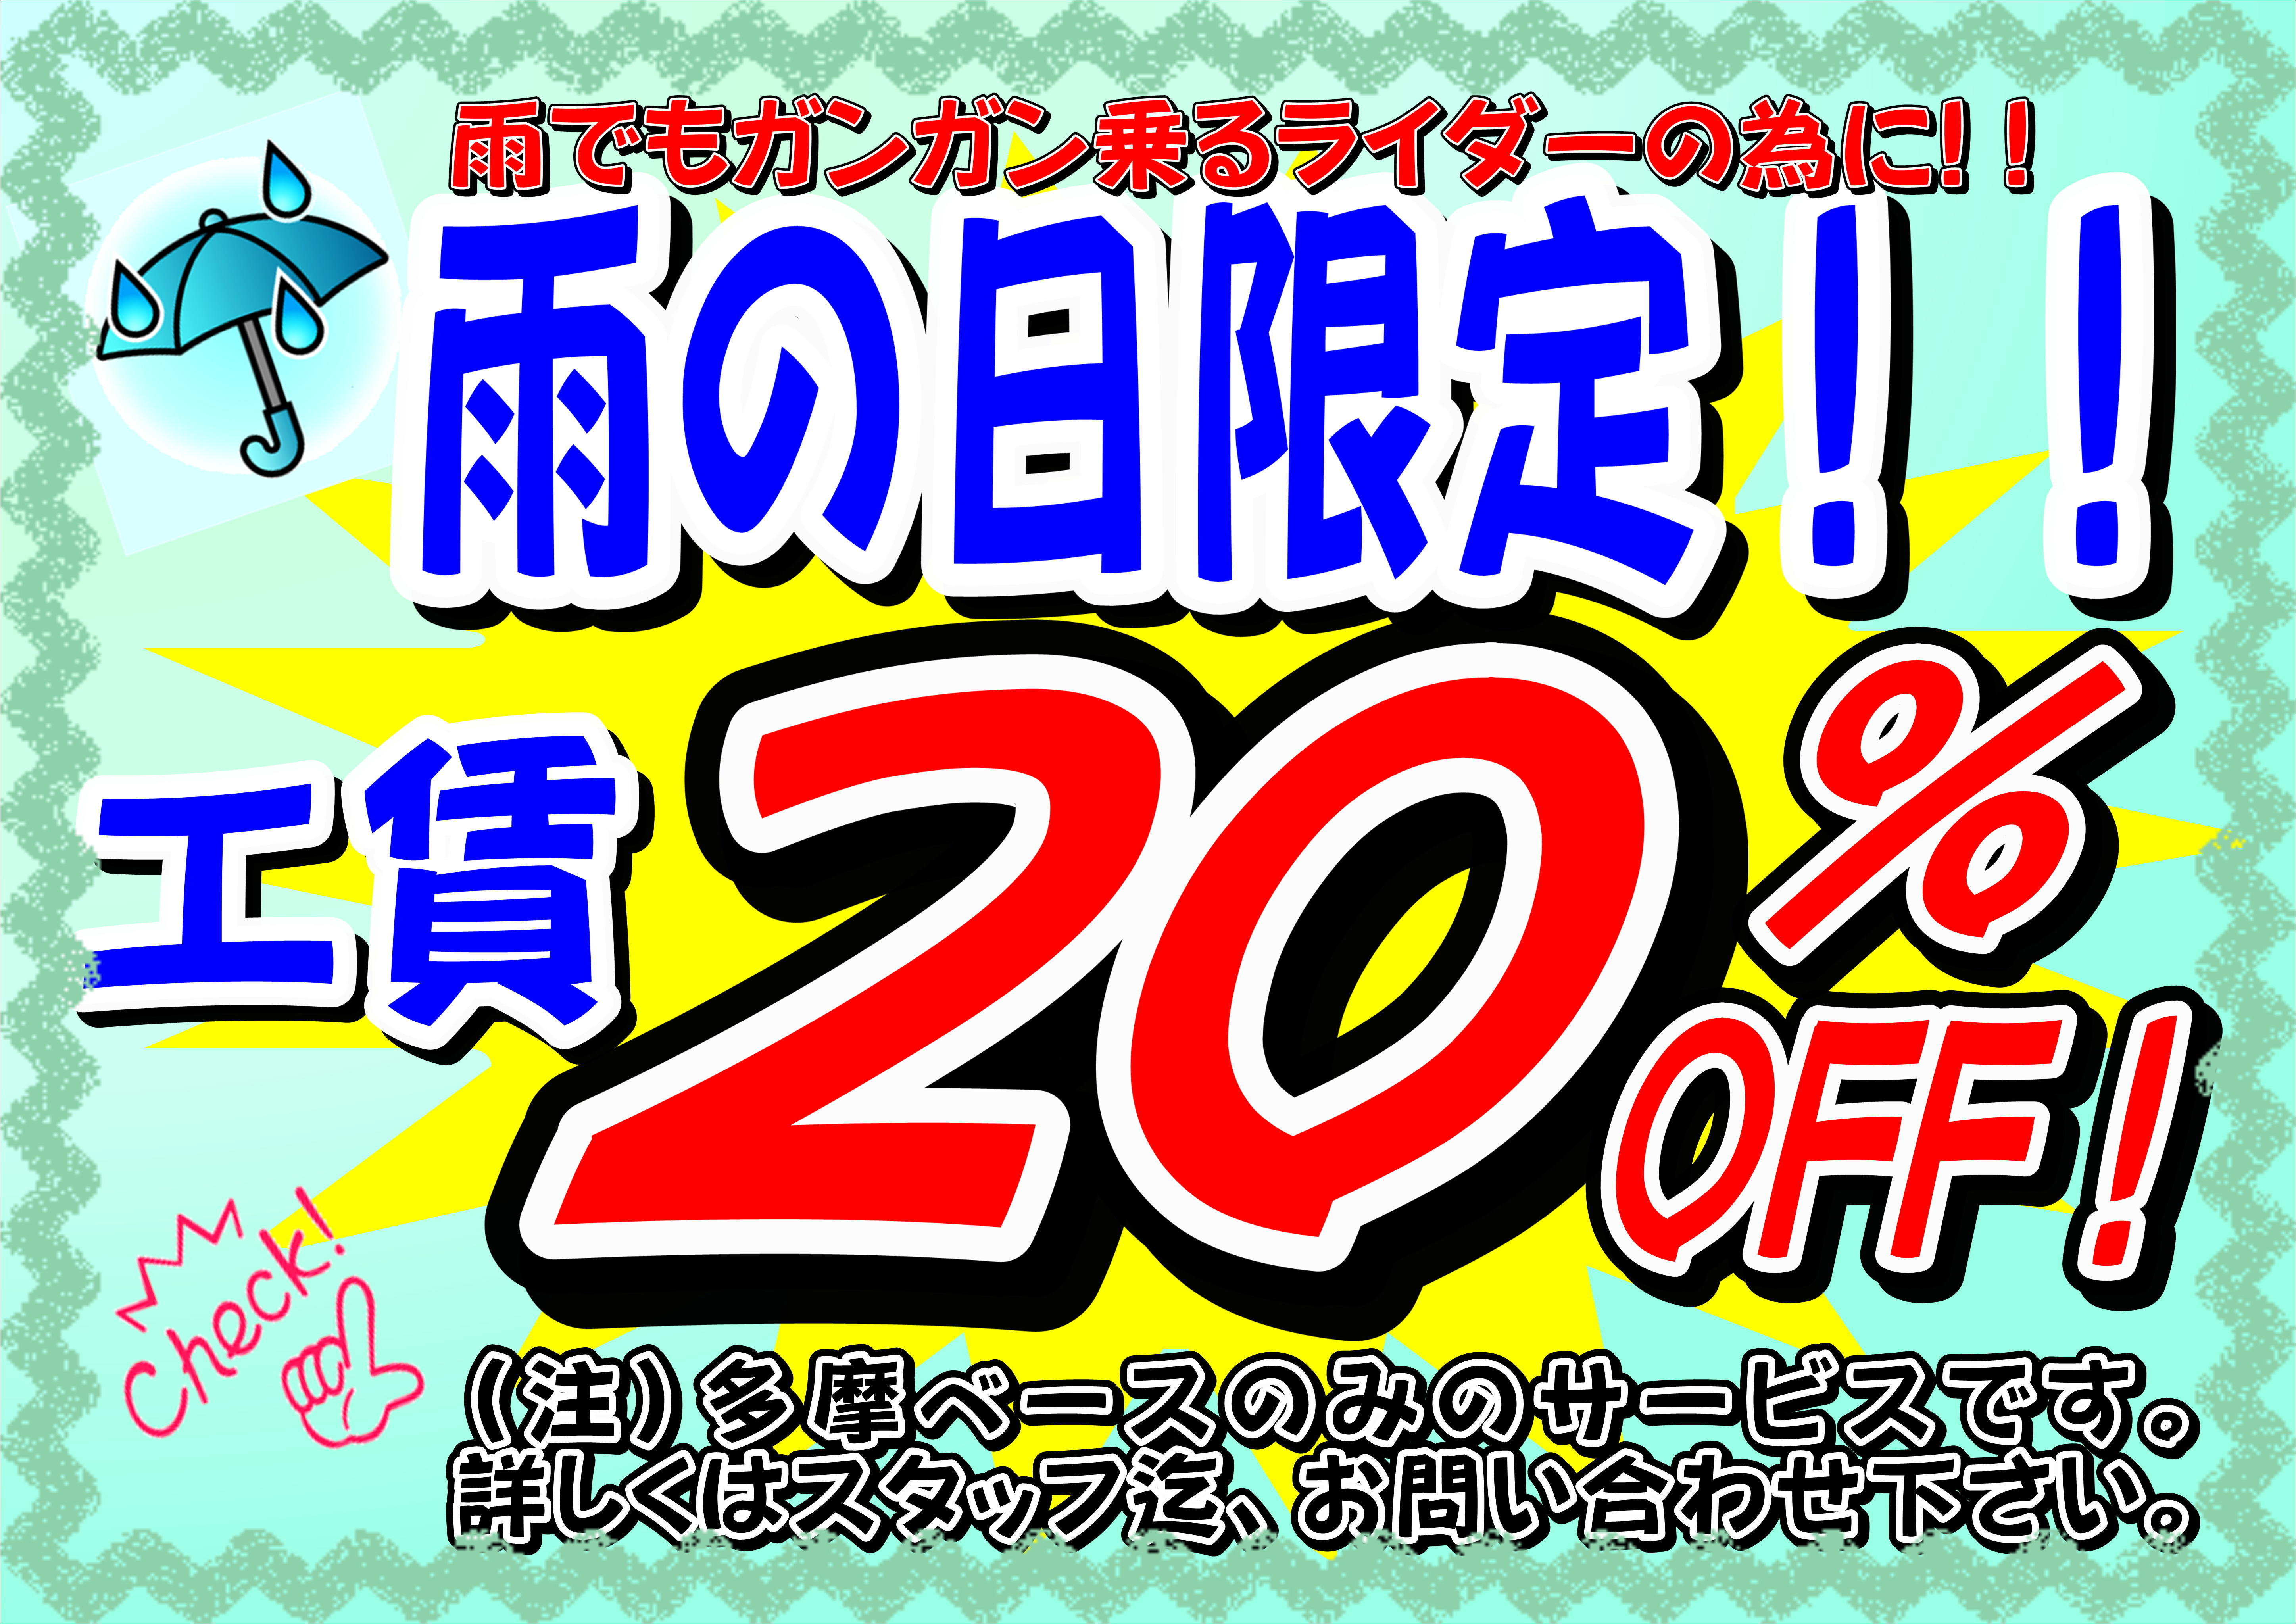 http://www.ricoland.co.jp/shopinfo/tamabase/information/85501cbb8f34709f7555924084690bfb08042f81.JPG